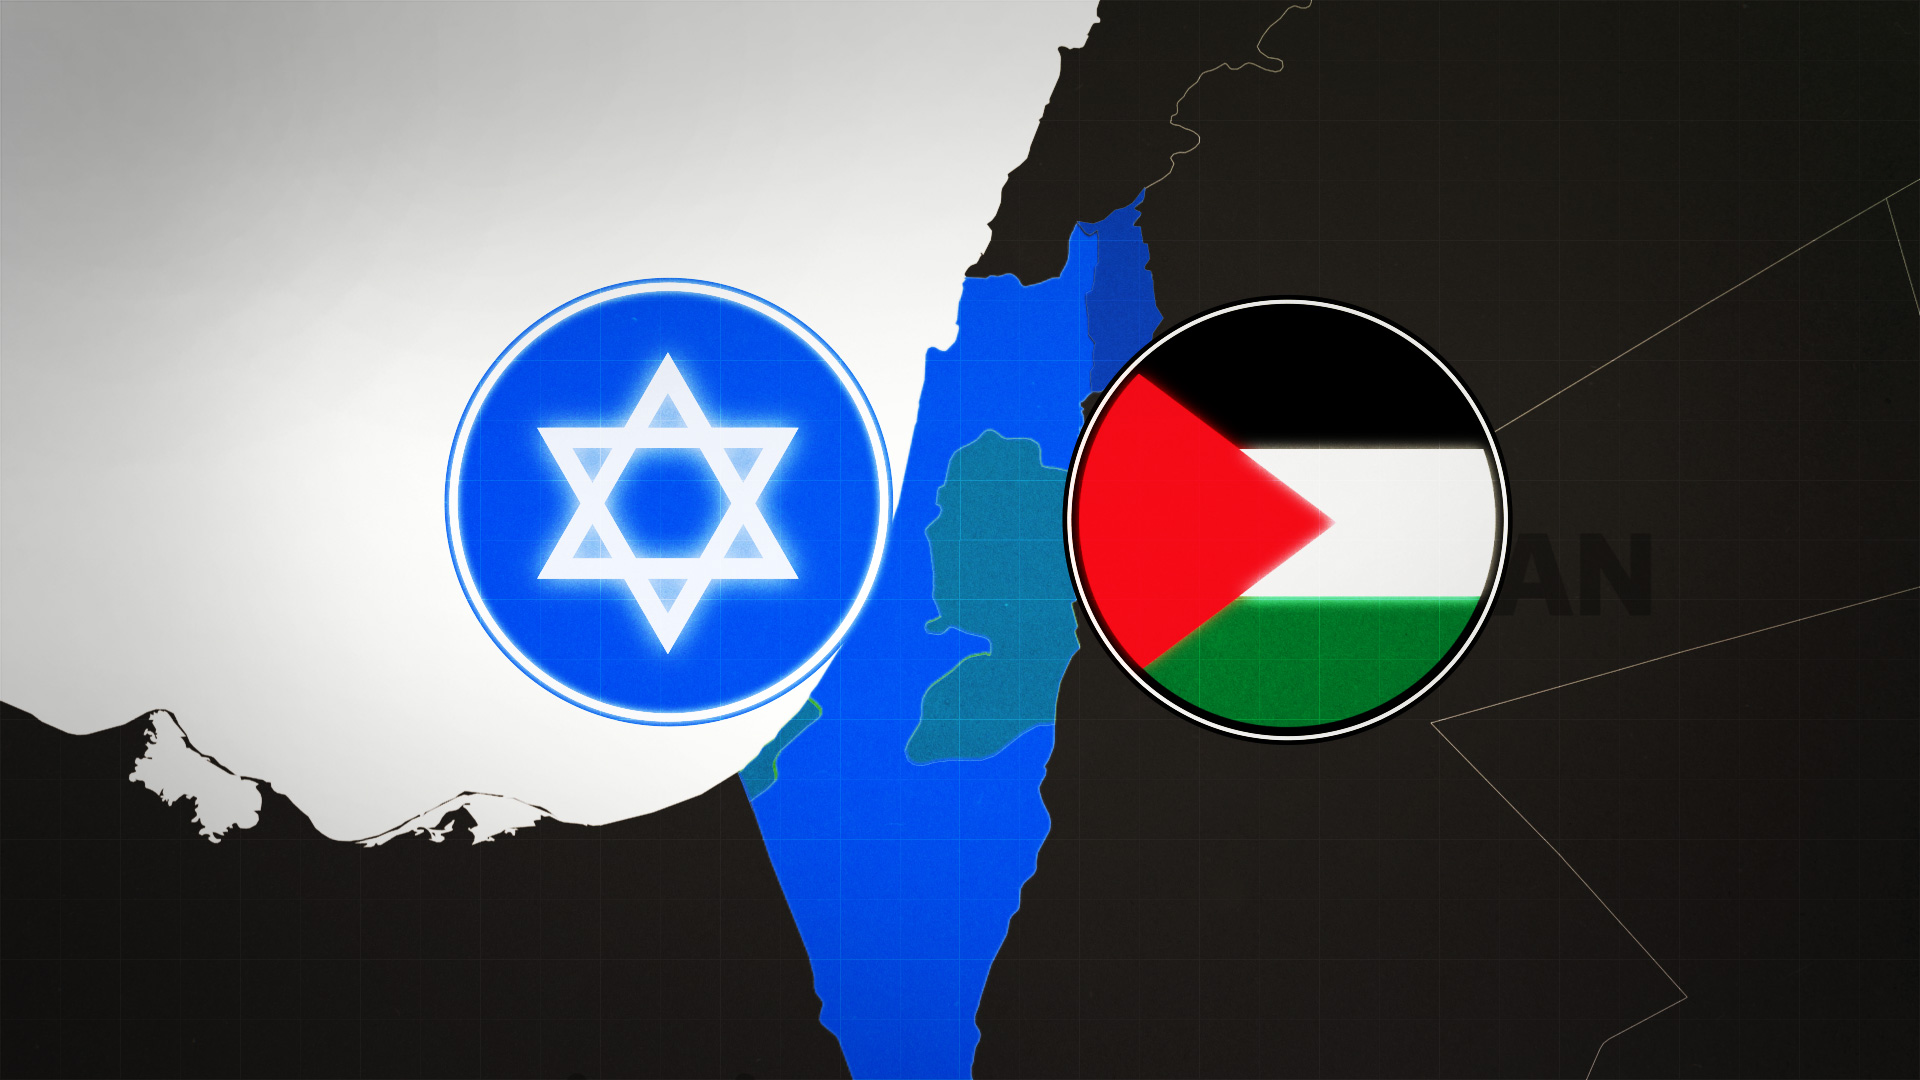 a history of the israeli and palestinian relationship Iran and israel october 11, 2010 and encouraging palestinian attacks on israel from gaza and the west bank in the heyday of israel-iran relations during the.